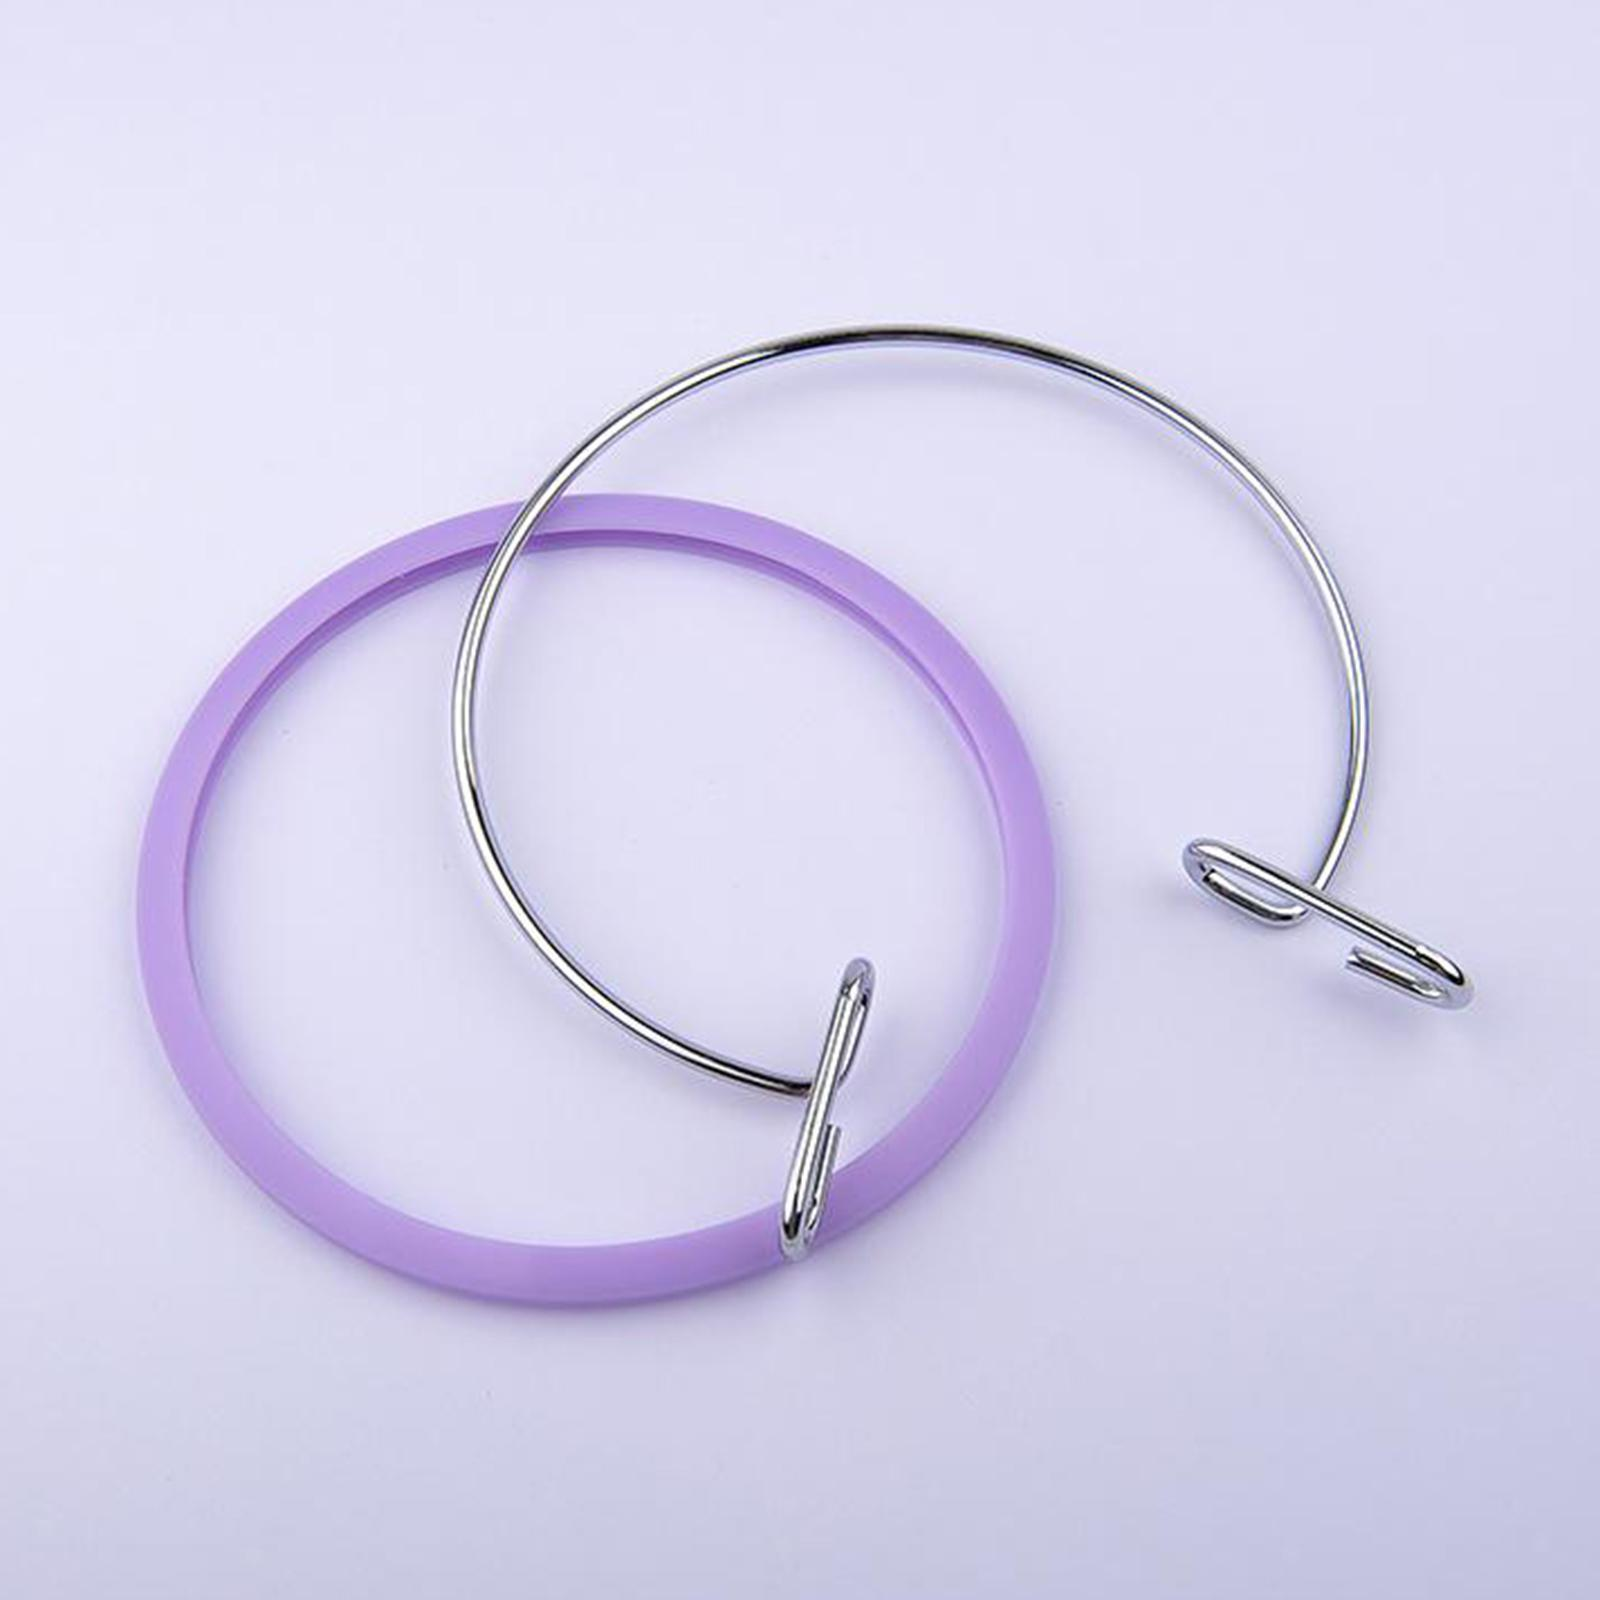 5 Inch Spring Tension Embroidery Hoop